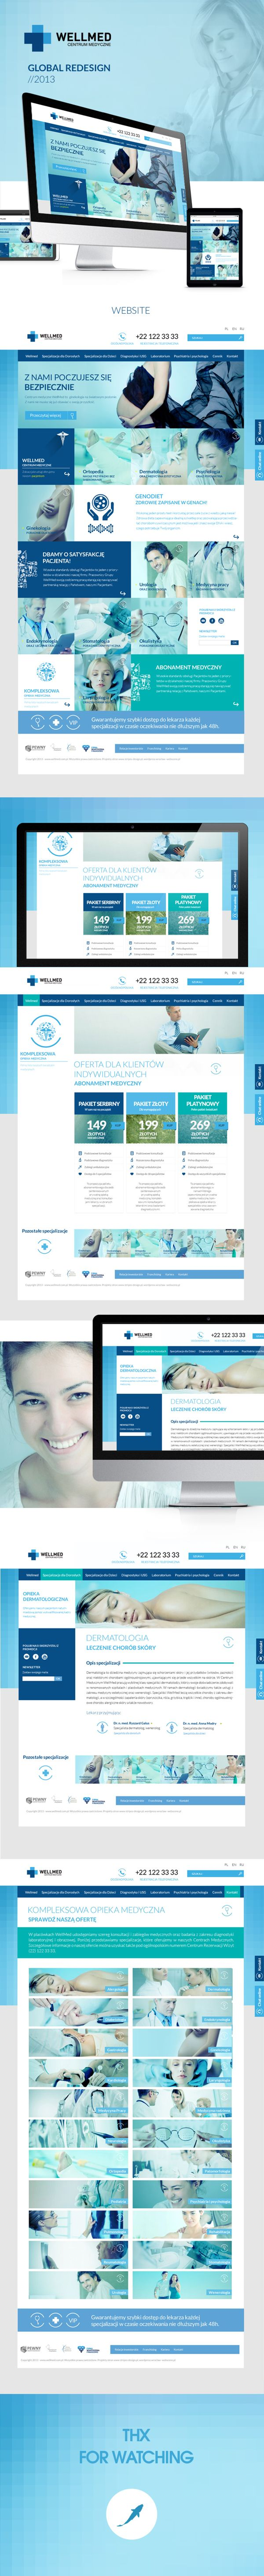 Wellmed - Centrum Medyczne by Tomasz Trefler, via Behance #medical #website #design